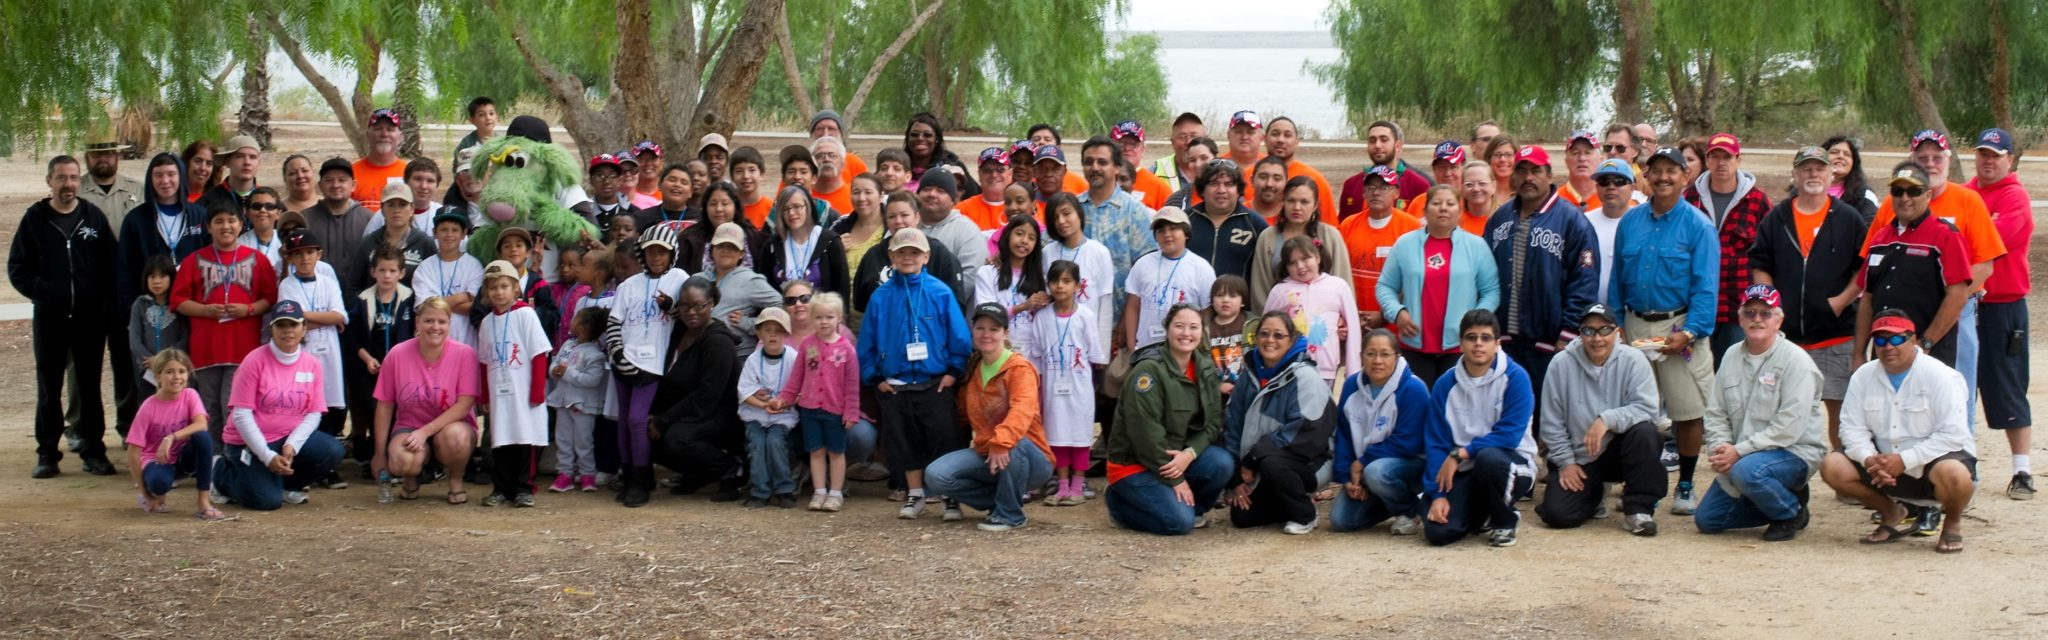 C.A.S.T. for Kids – Lake Perris (CA)